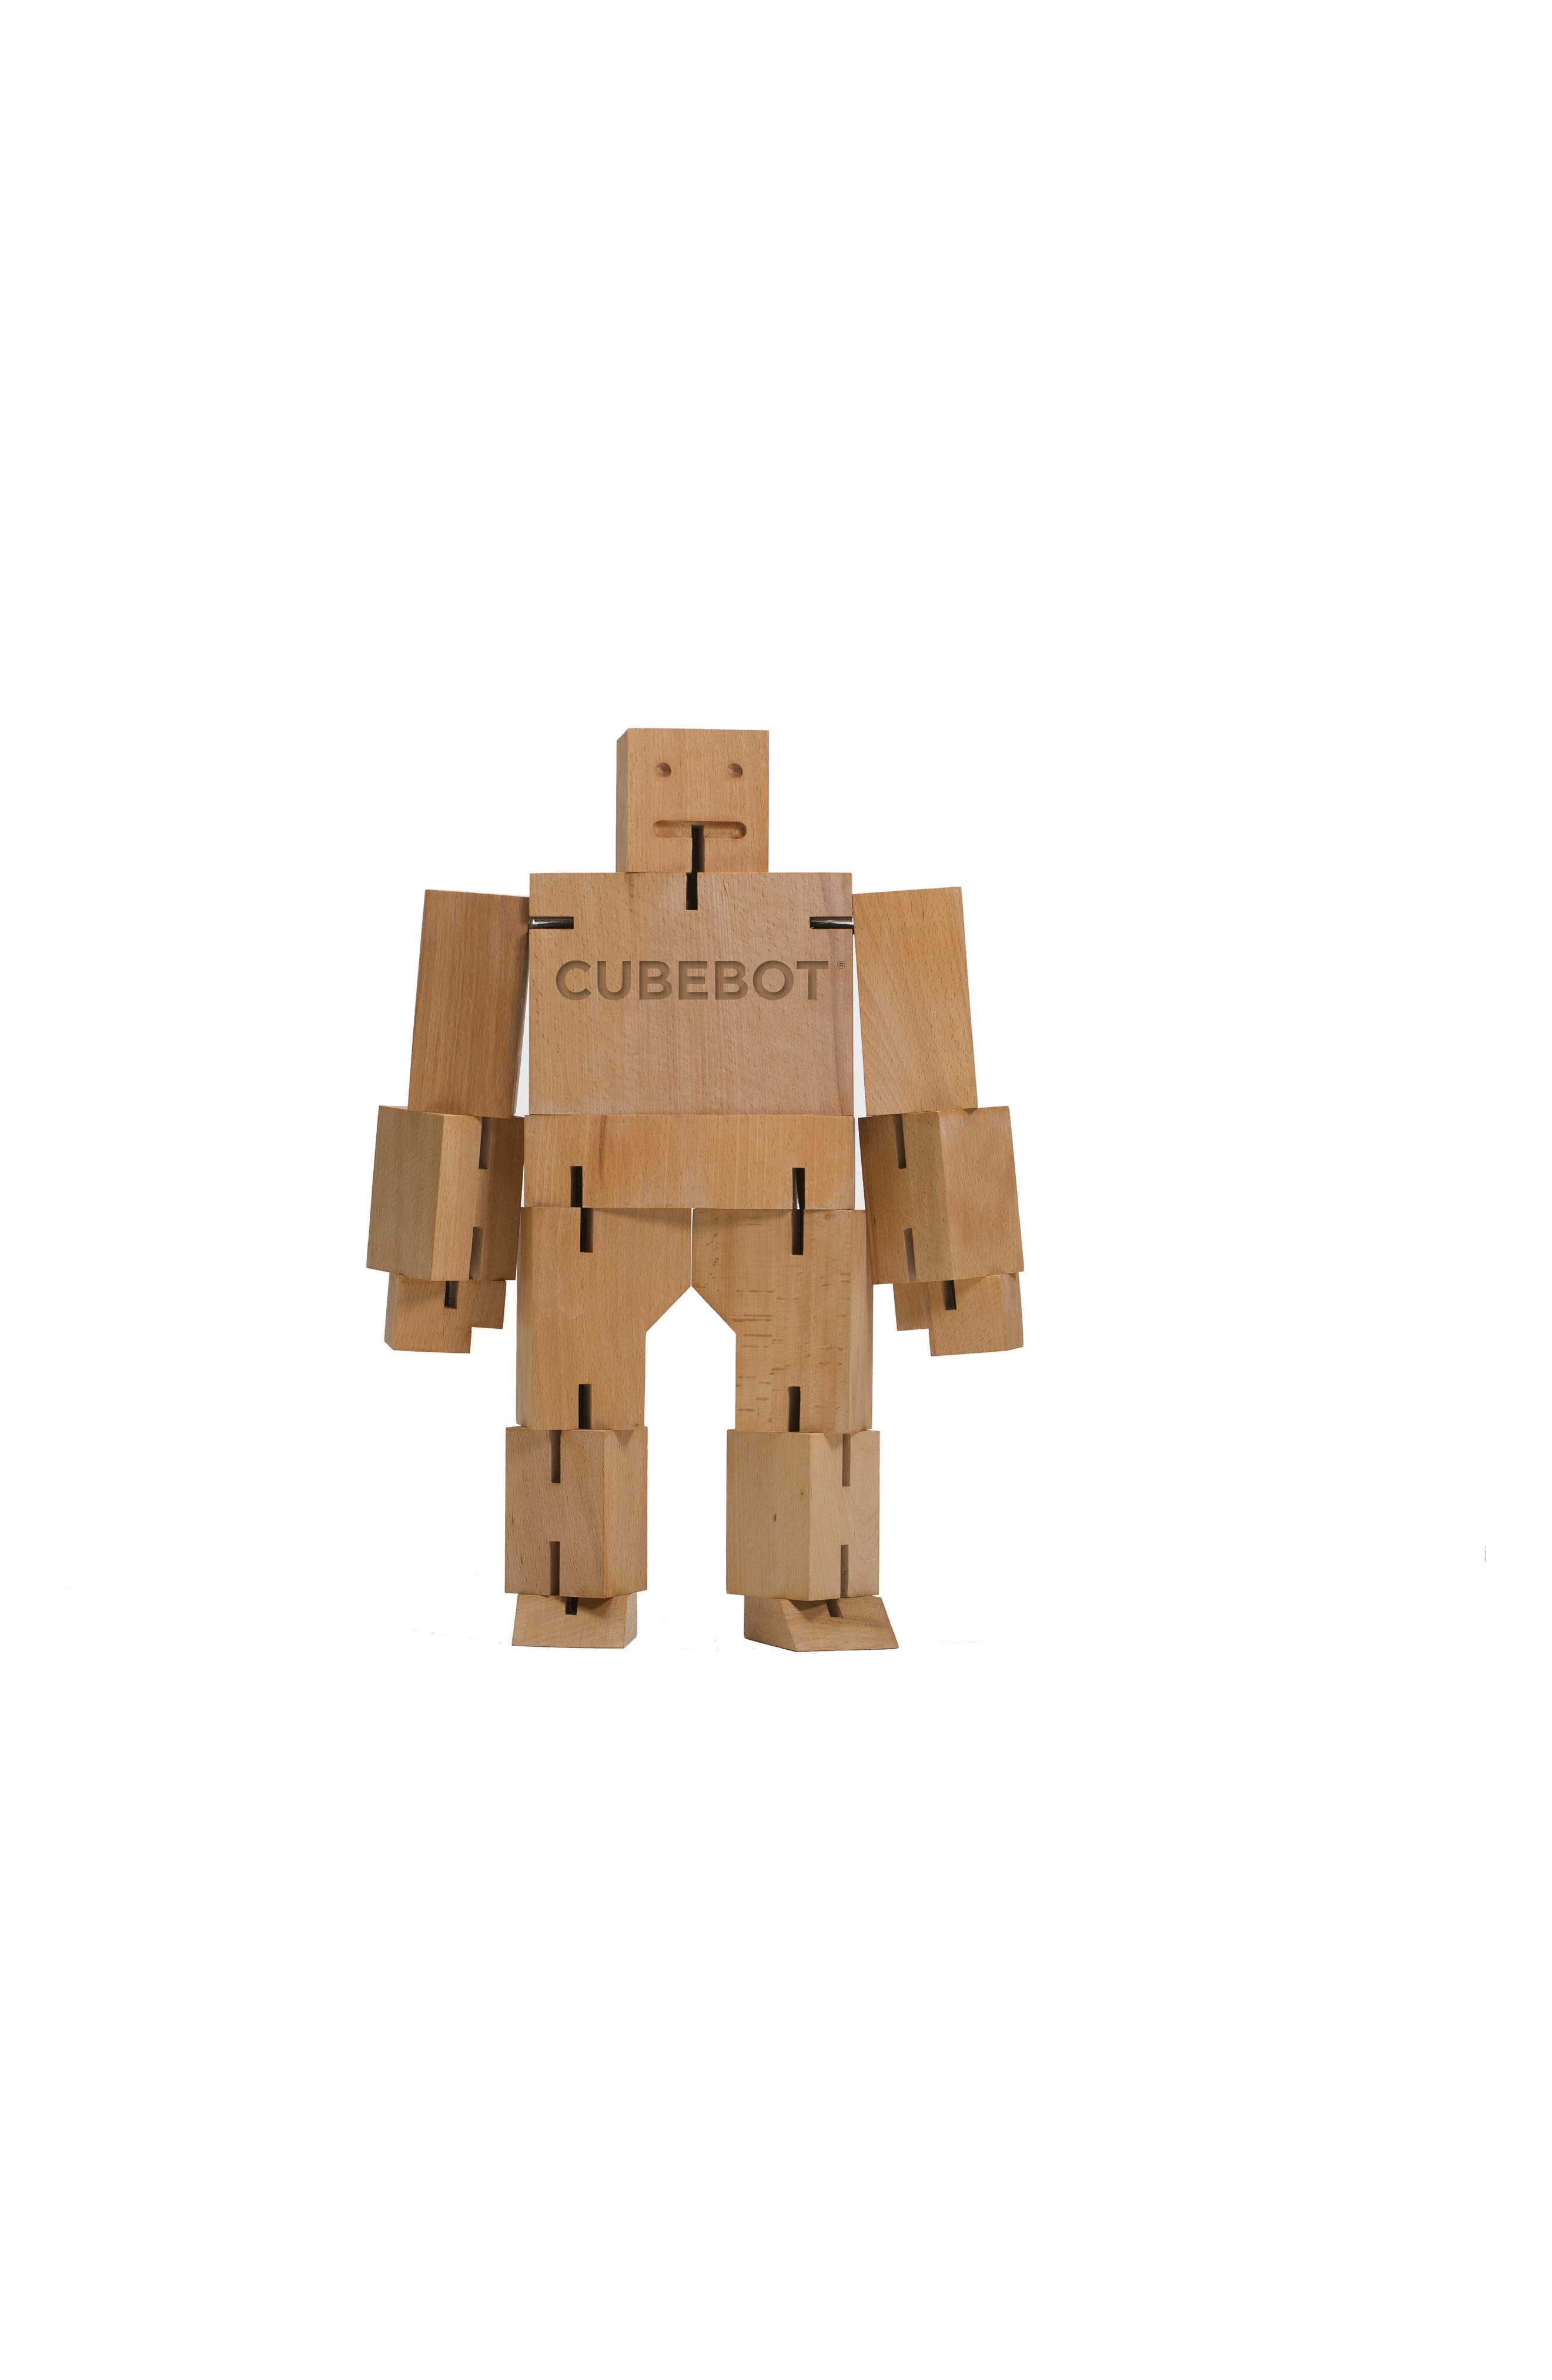 Cubebot Small Wooden Robot Toy,                             Main thumbnail 1, color,                             200